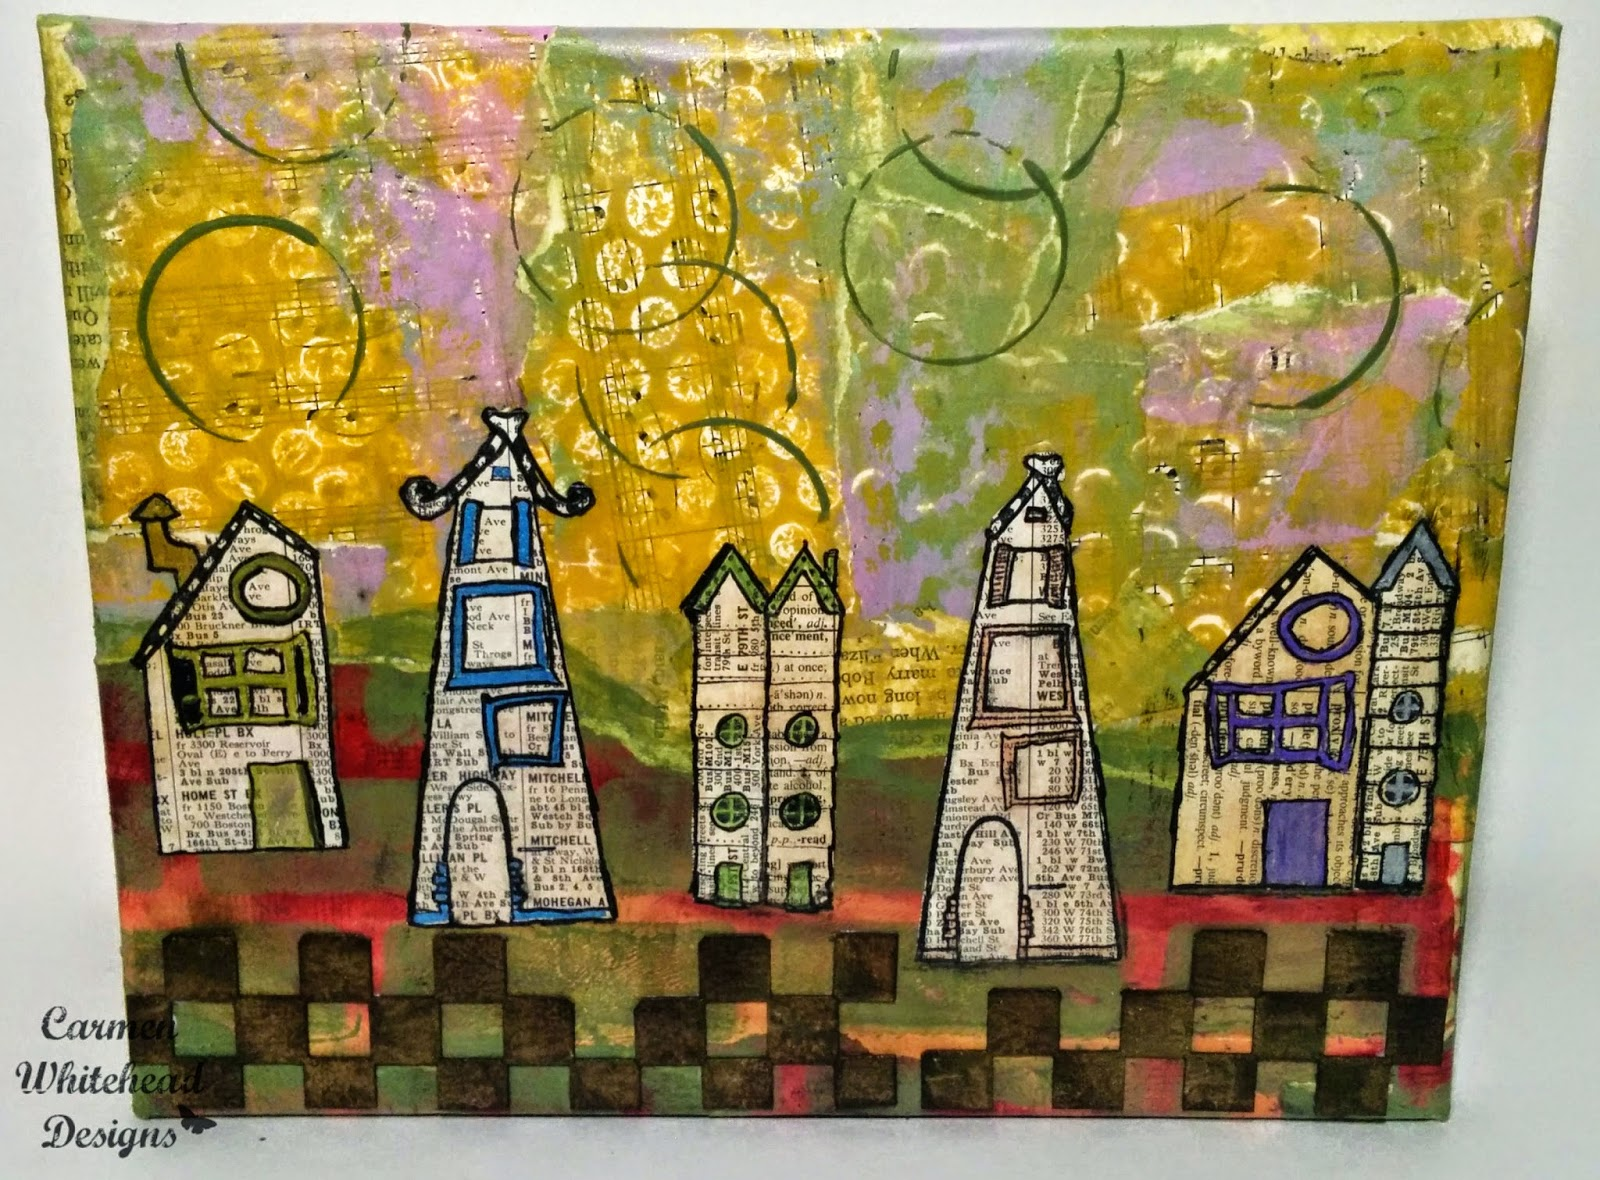 Whimsical Village Canvas, RubberMoon stamps, Imagine Crafts created by Carmen Whitehead designs